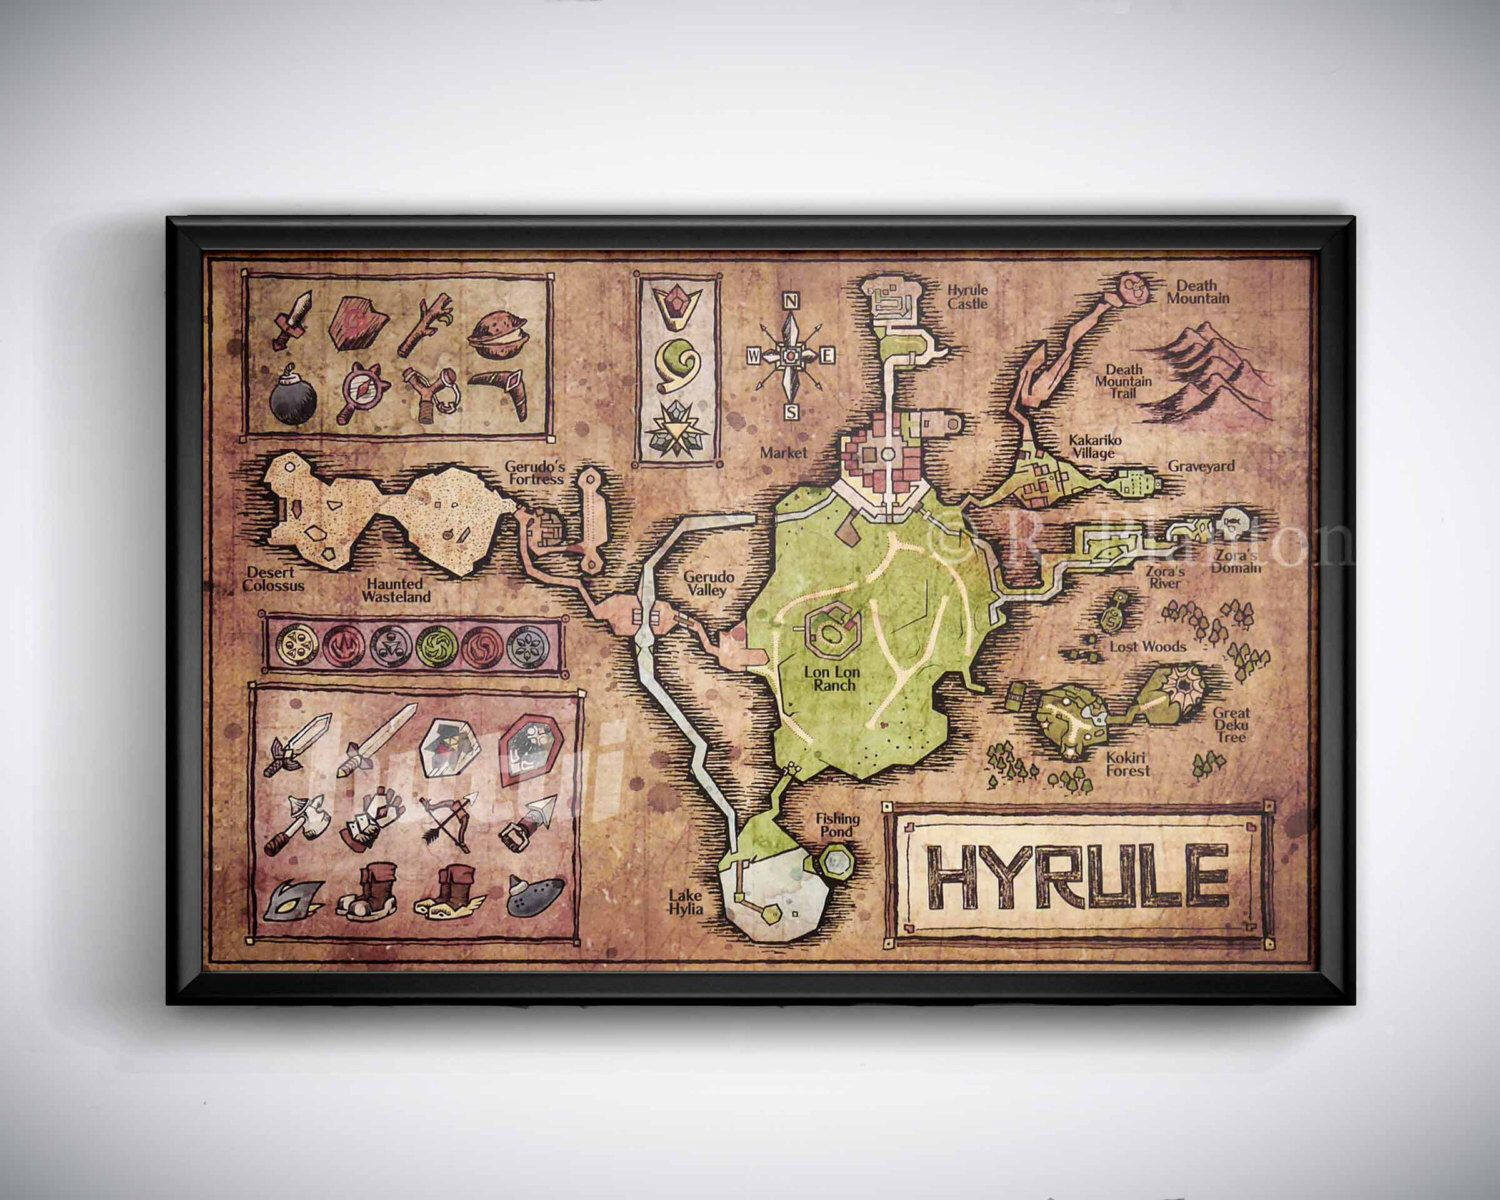 Map of hyrule from legend of zelda ocarina of time english or map of hyrule from legend of zelda ocarina of time english or hylian zelda map hyrule map or gumiabroncs